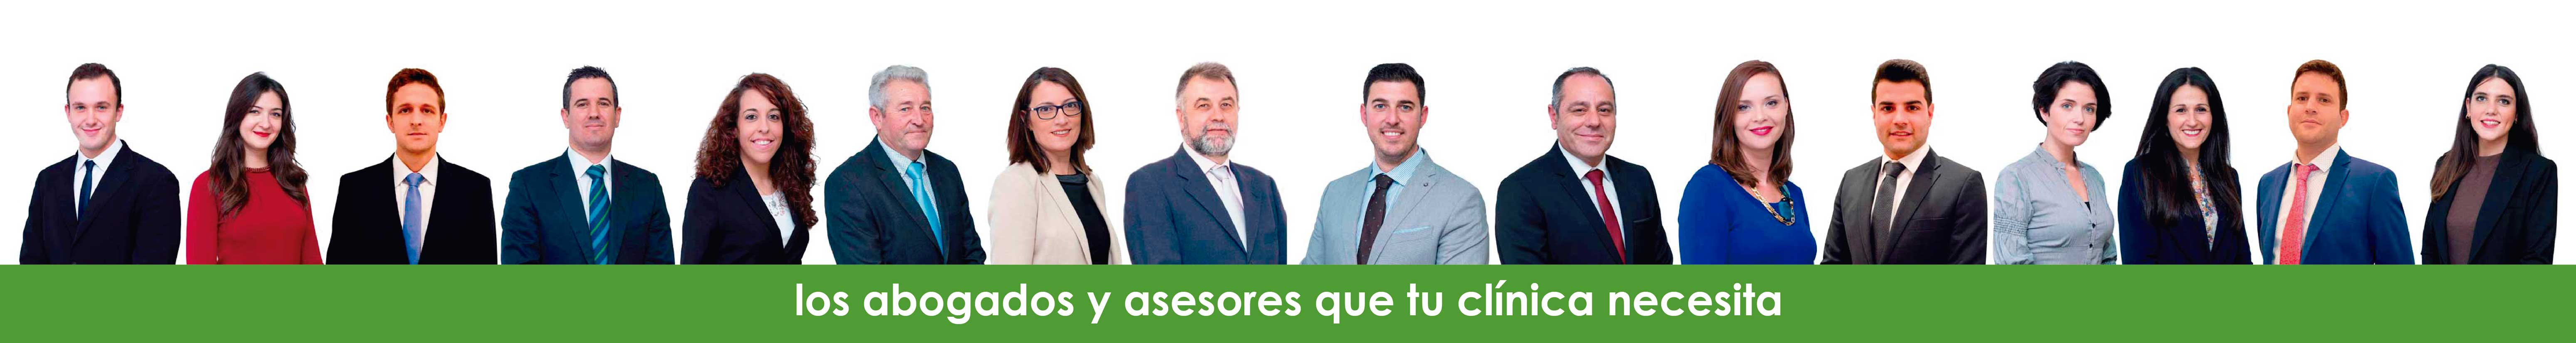 oya dental consulting asesores para clinicas dentales